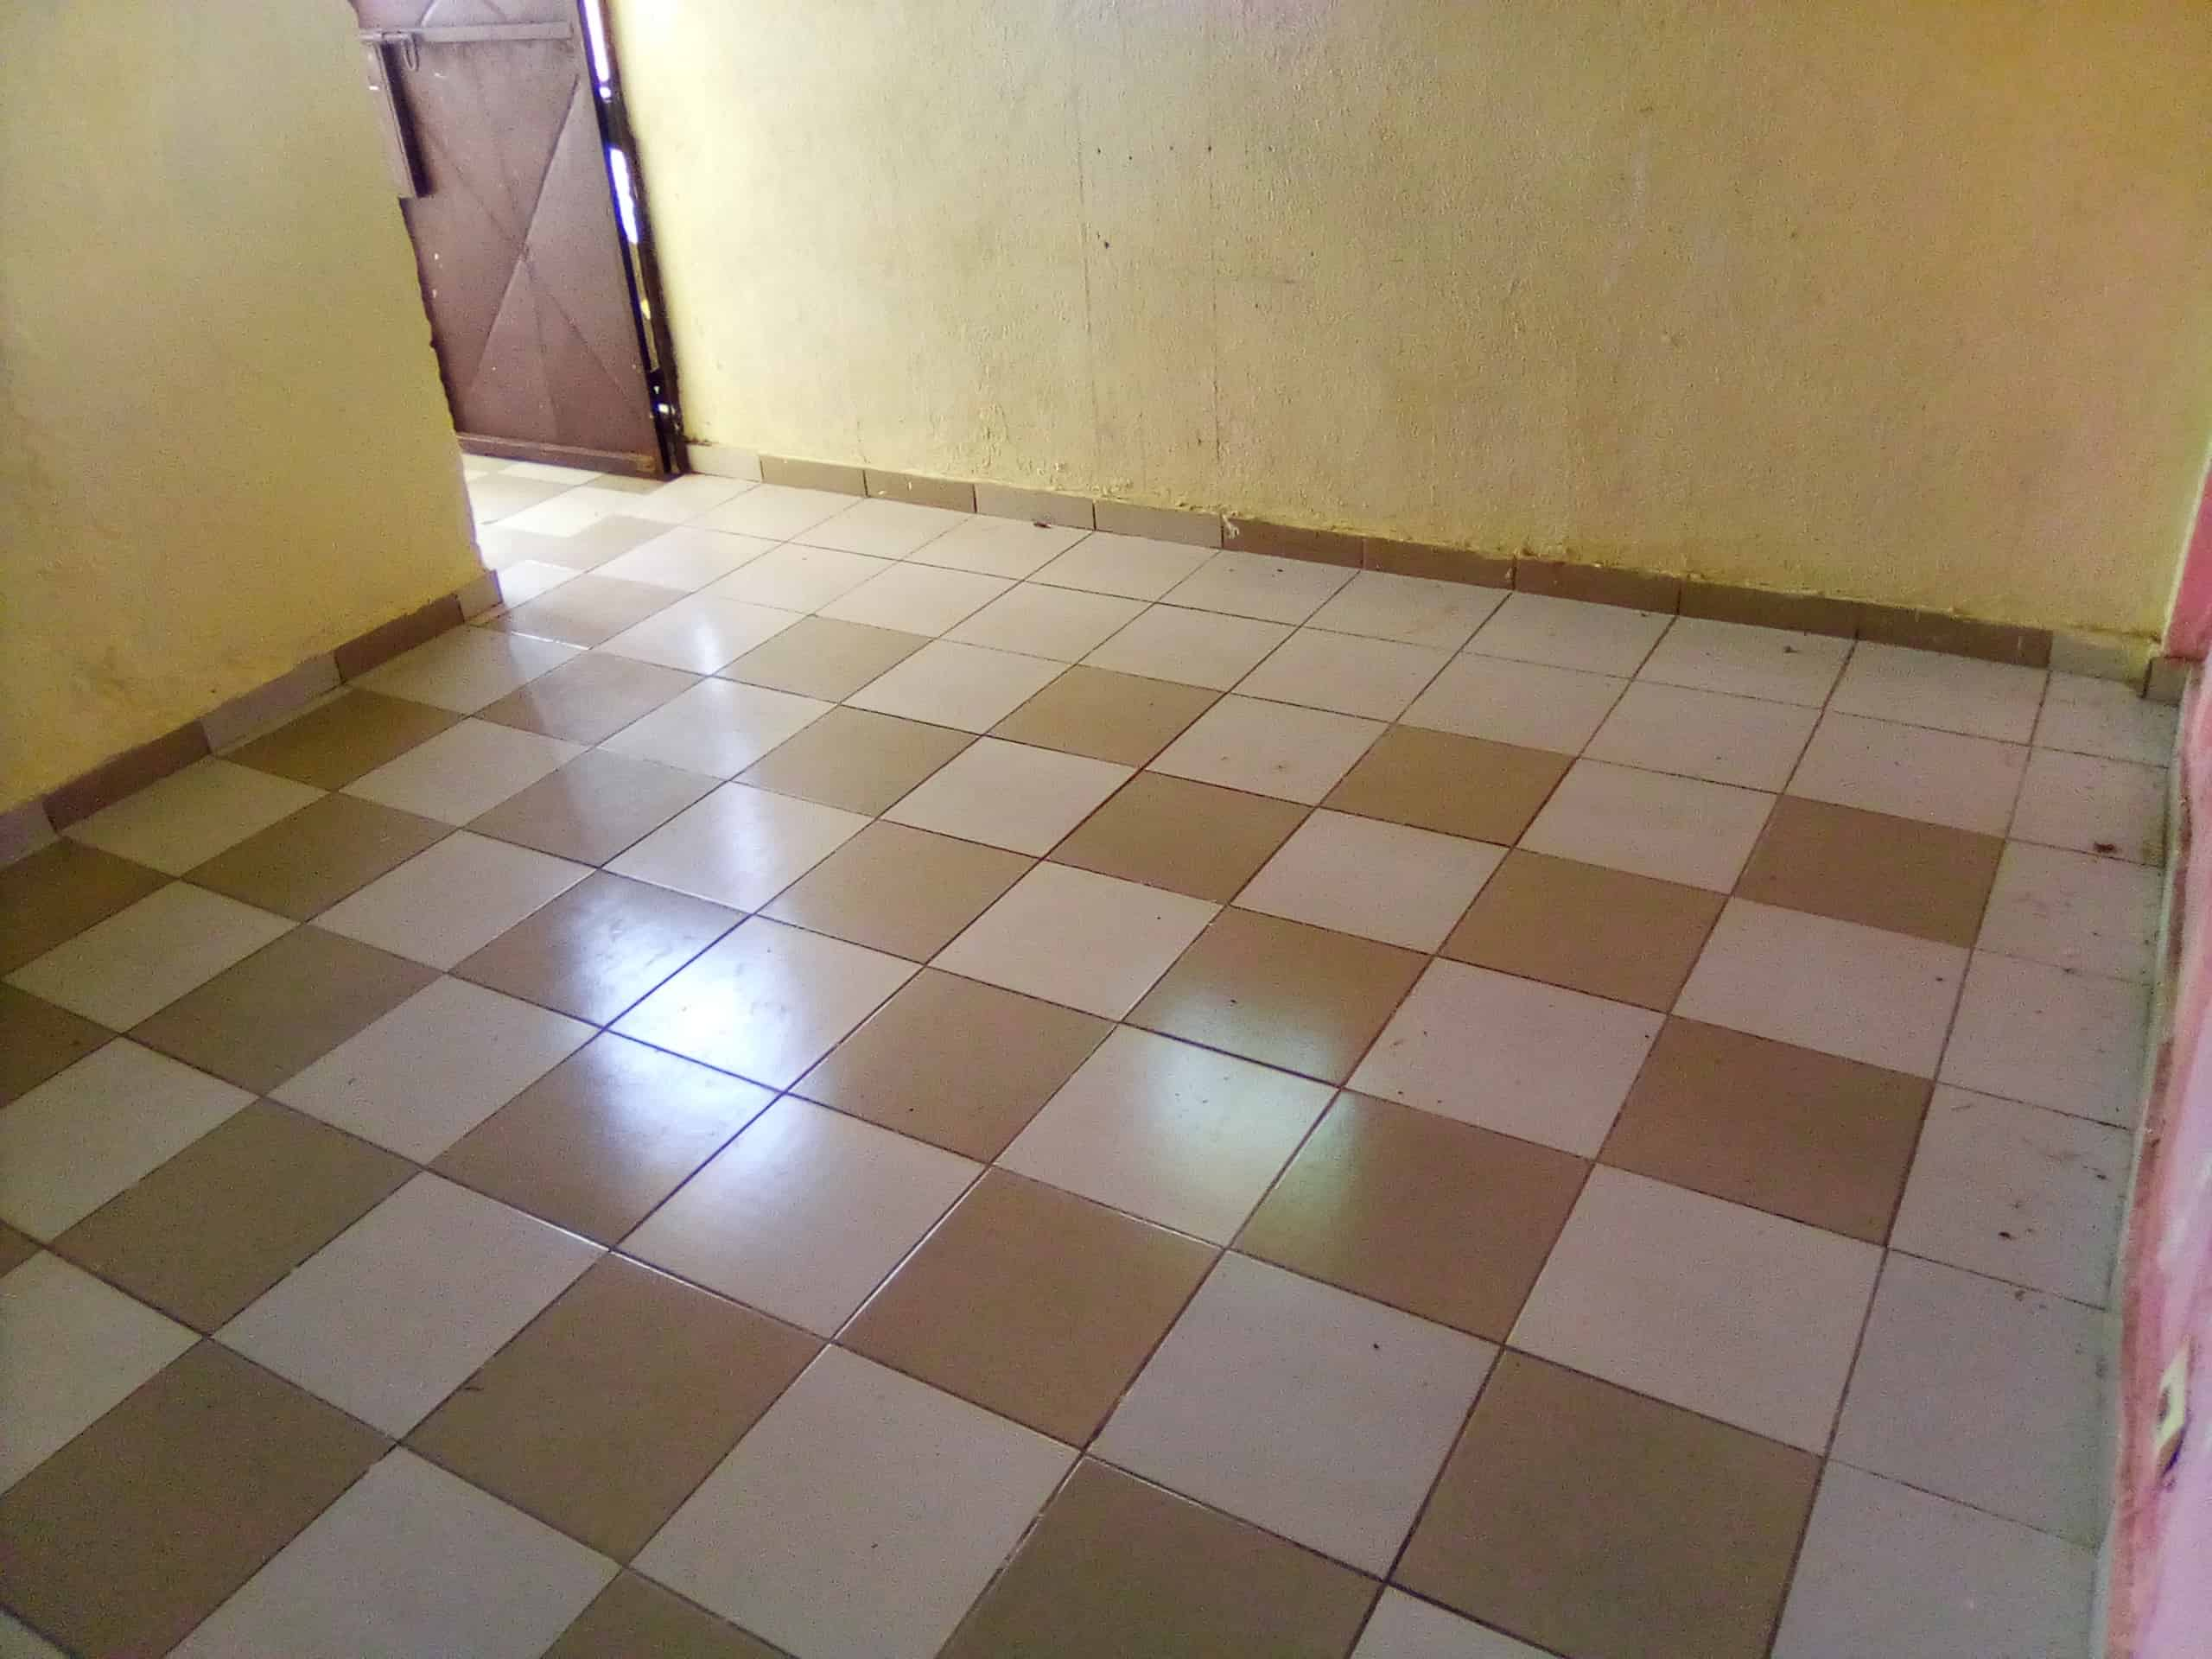 Studio to rent - Douala, Logpom, logpom - 25 000 FCFA / month